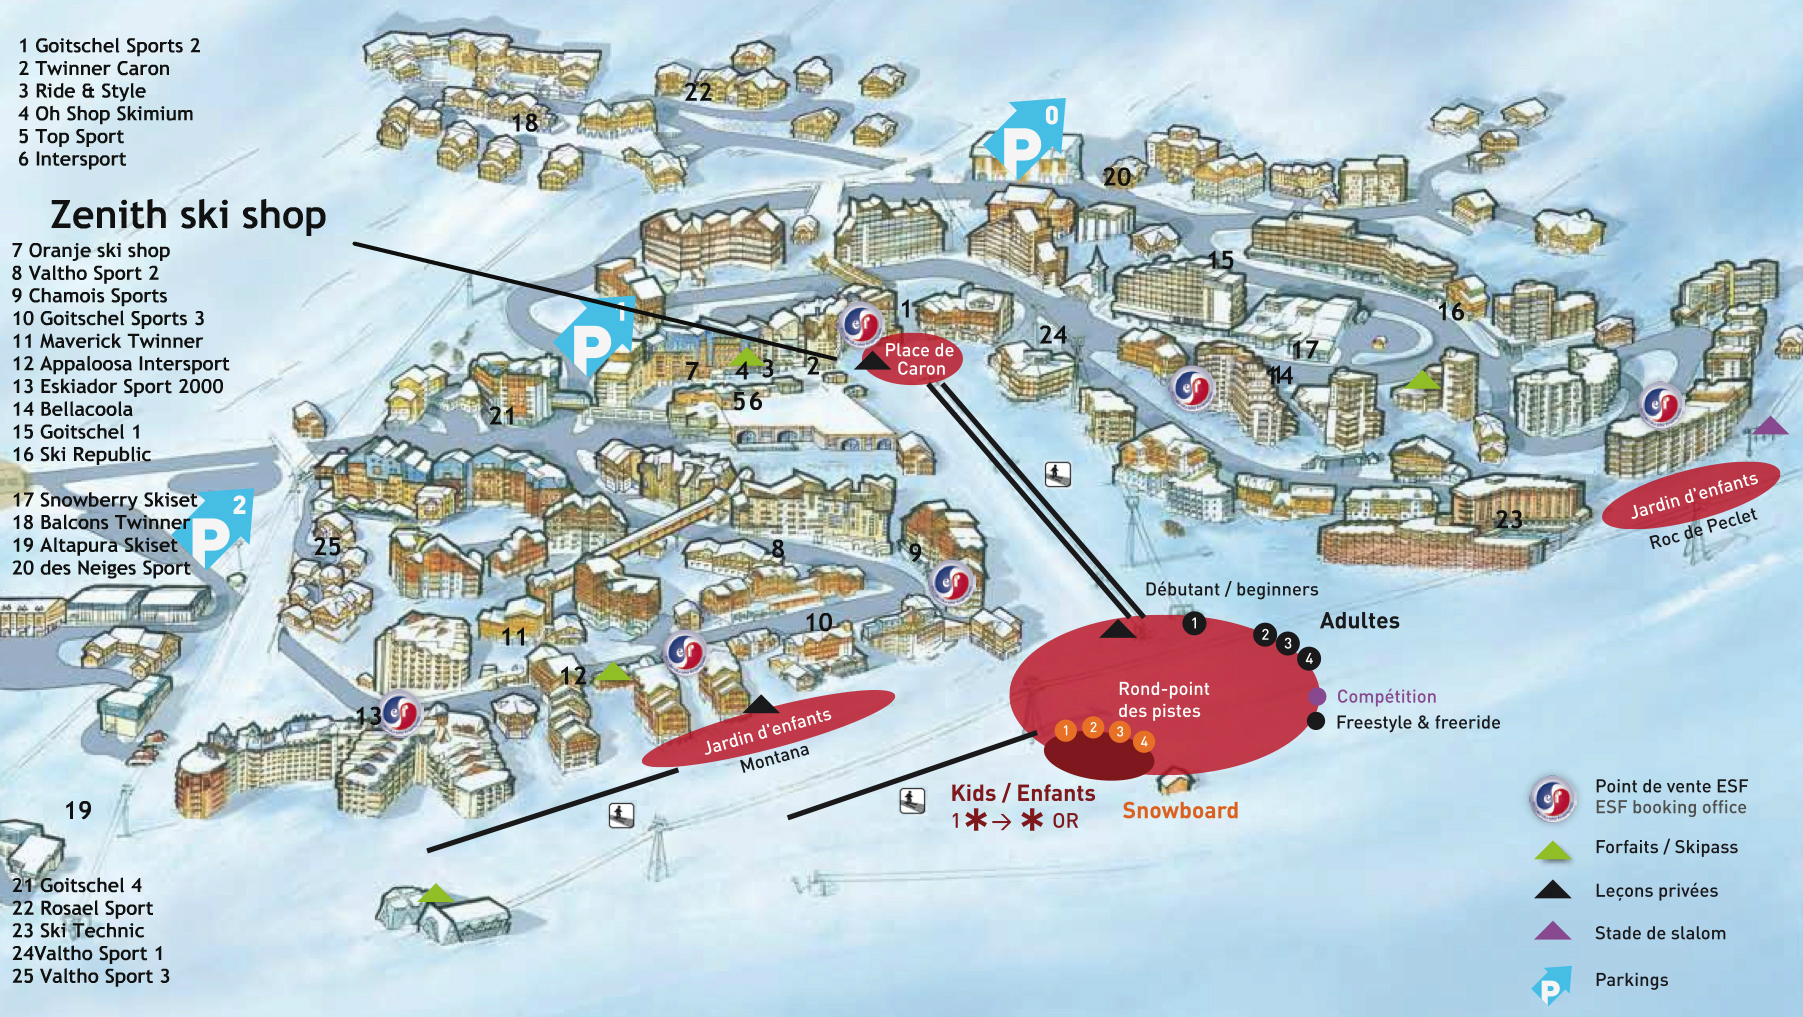 Location map of ski shops in Val Thorens